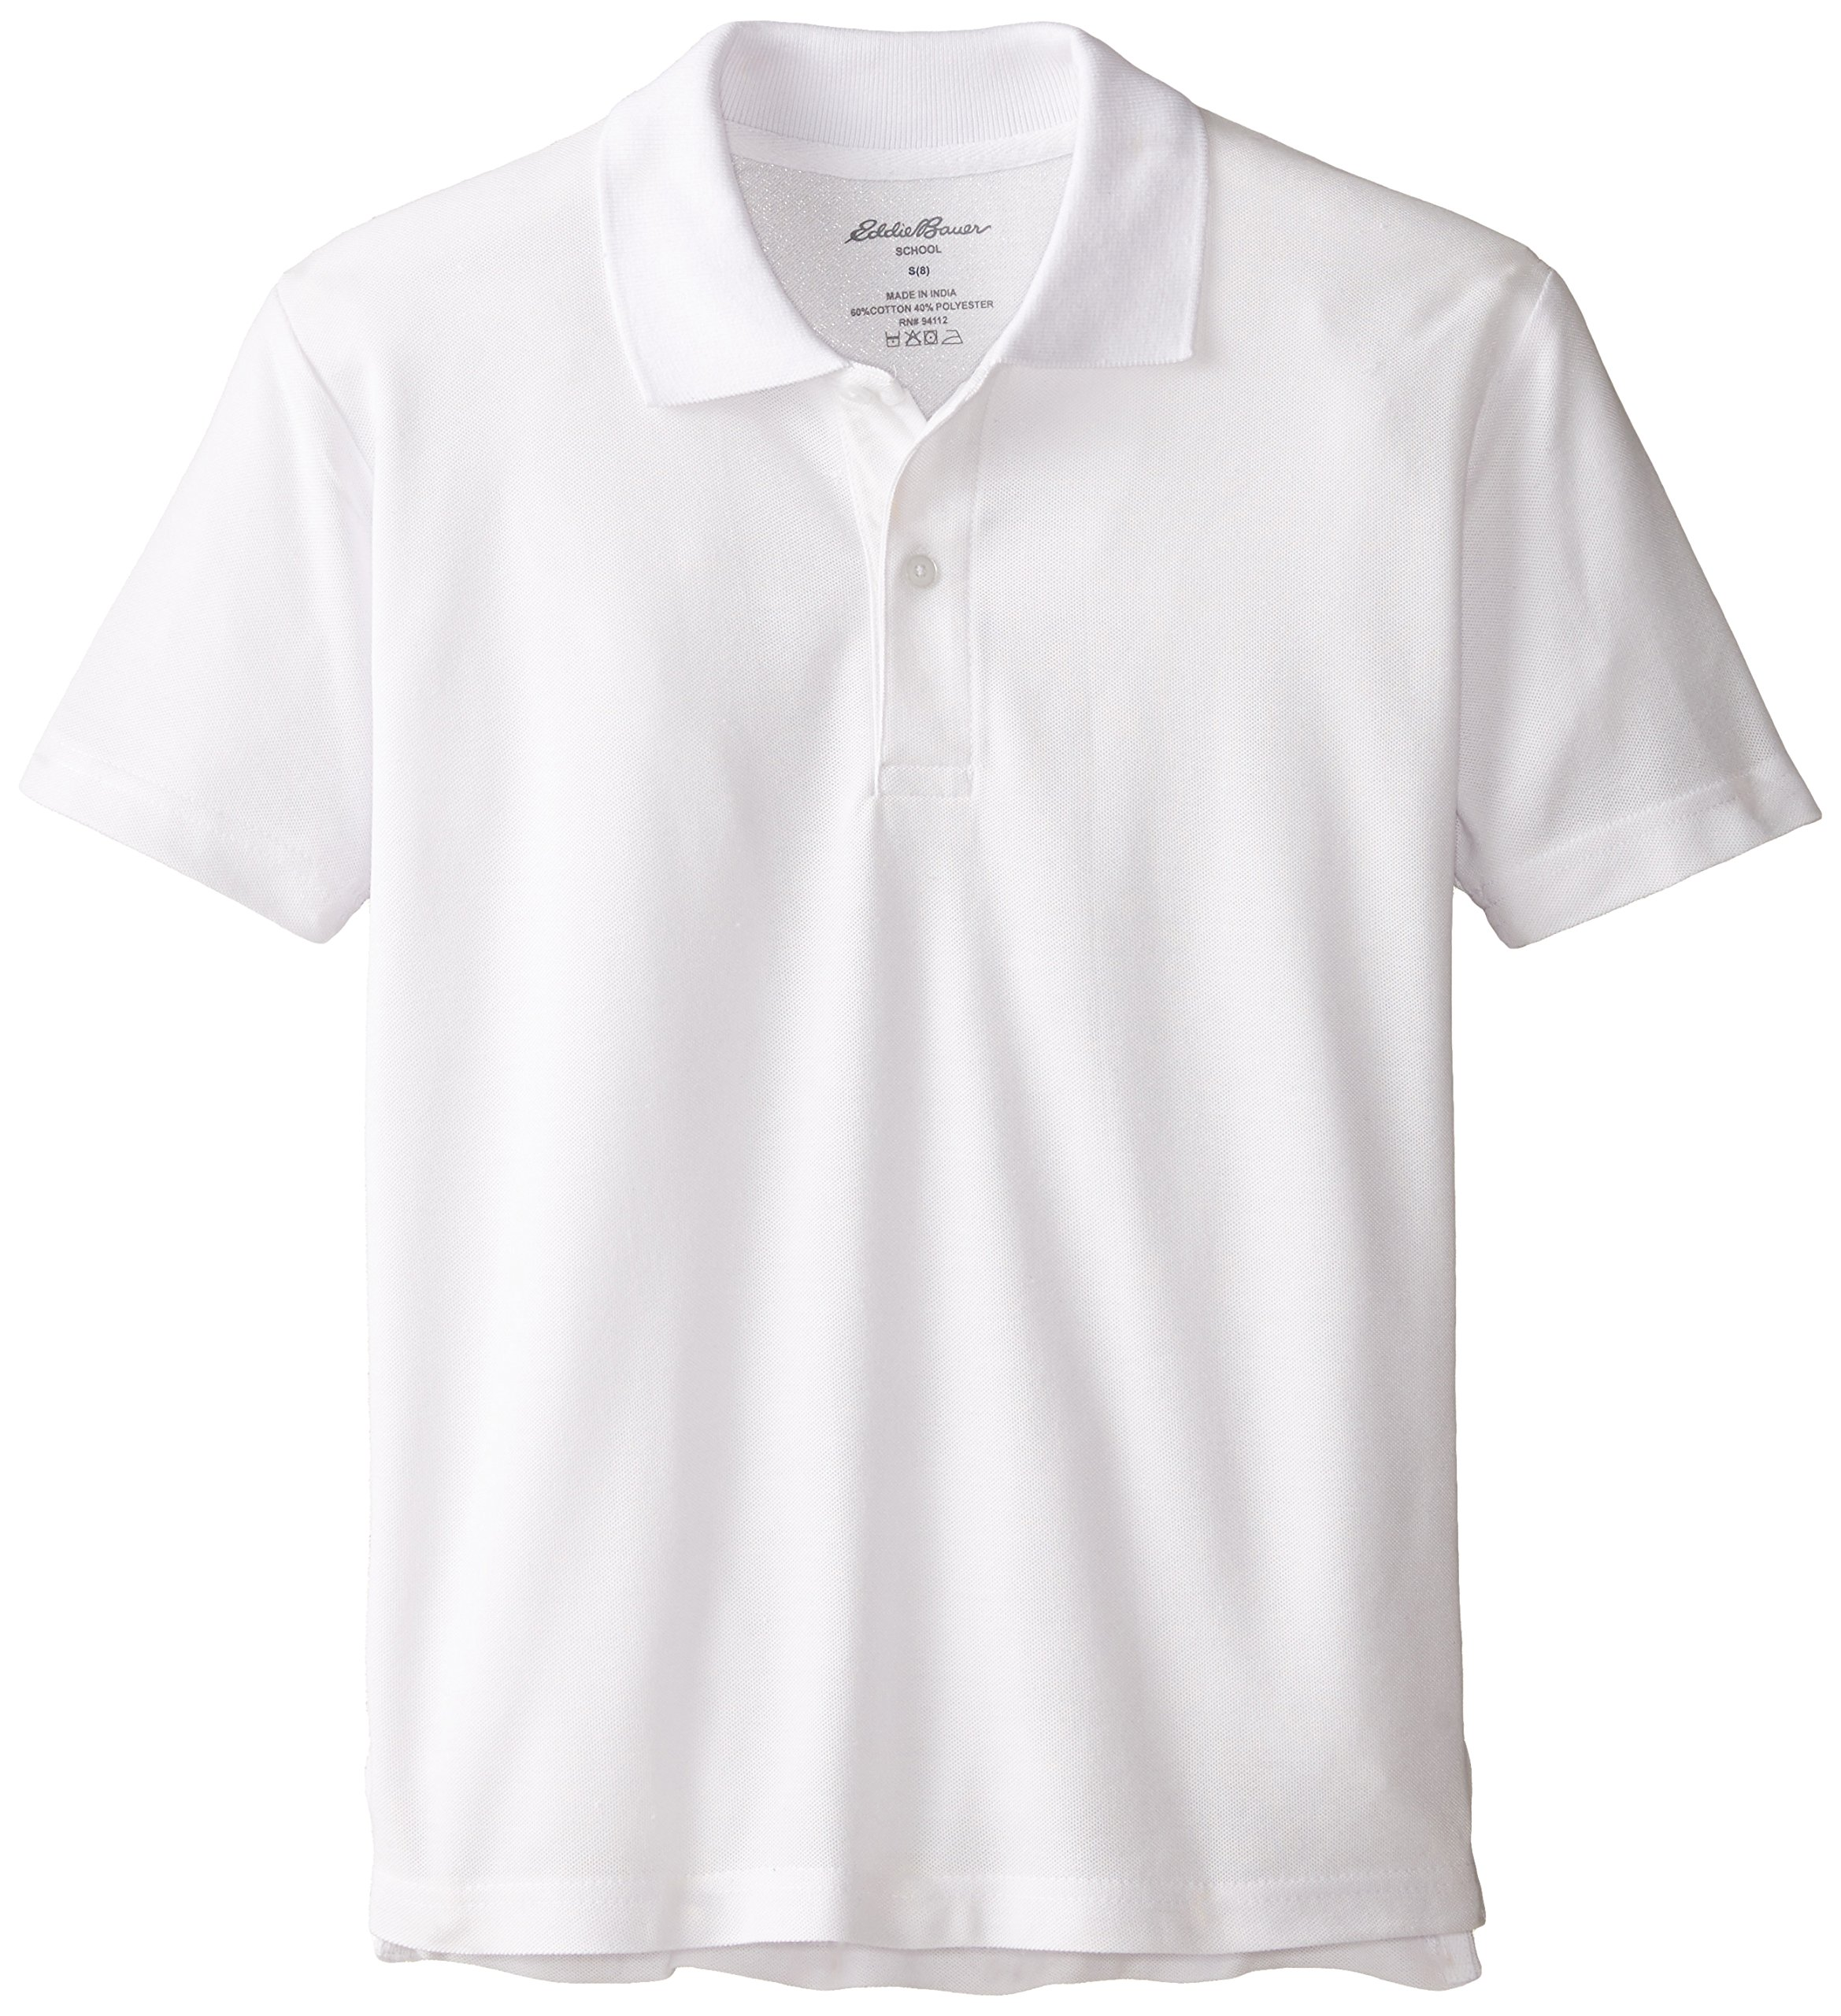 Eddie Bauer Boys' Short Long Sleeve Polo Shirt (More Styles Available), Performance White, 10/12